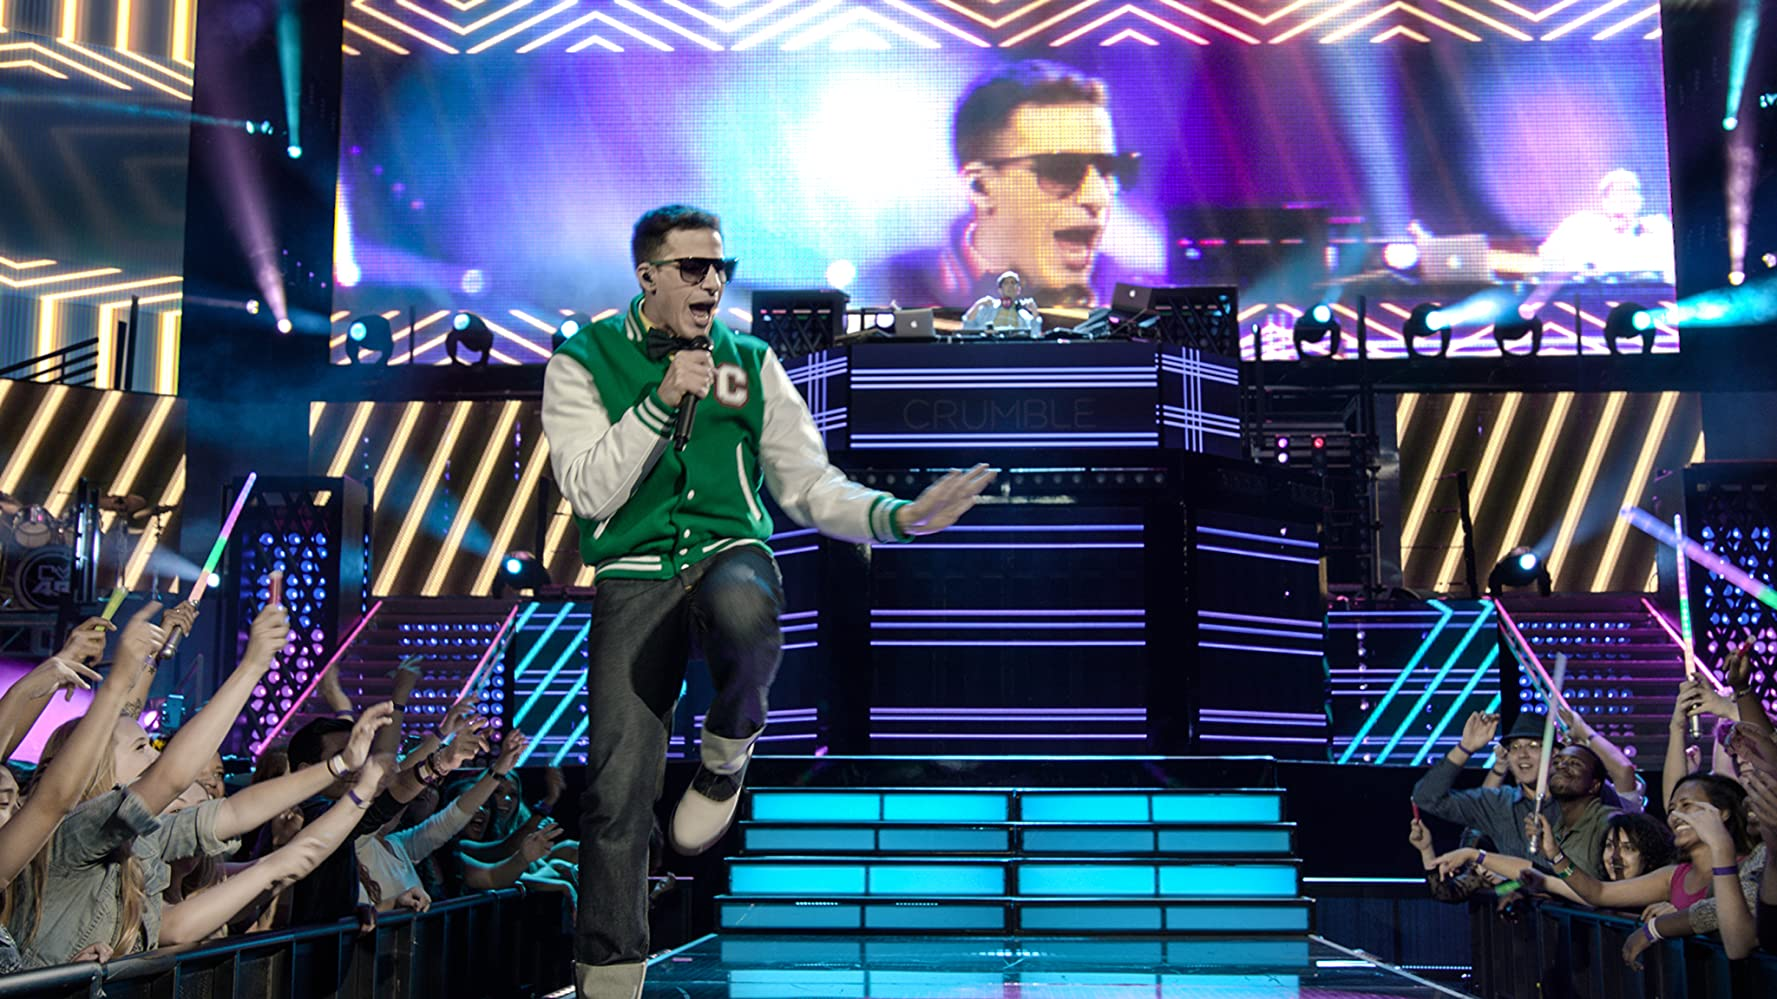 Andy Samberg in Popstar: Never Stop Never Stopping (2016)